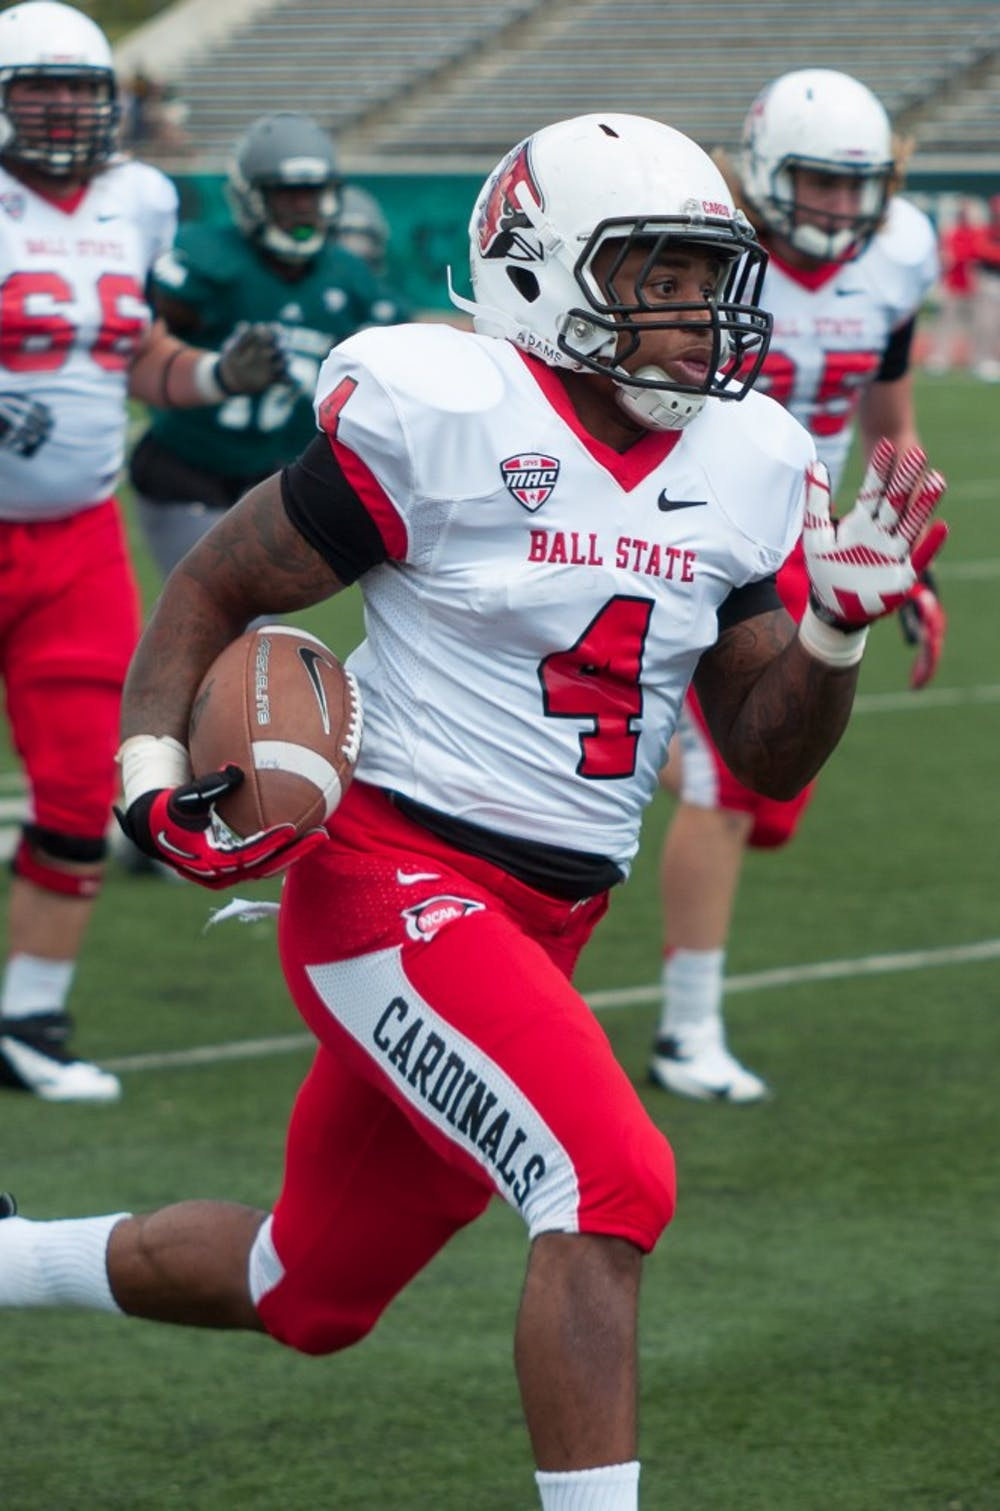 Ball State spoils EMU homecoming, 51-20